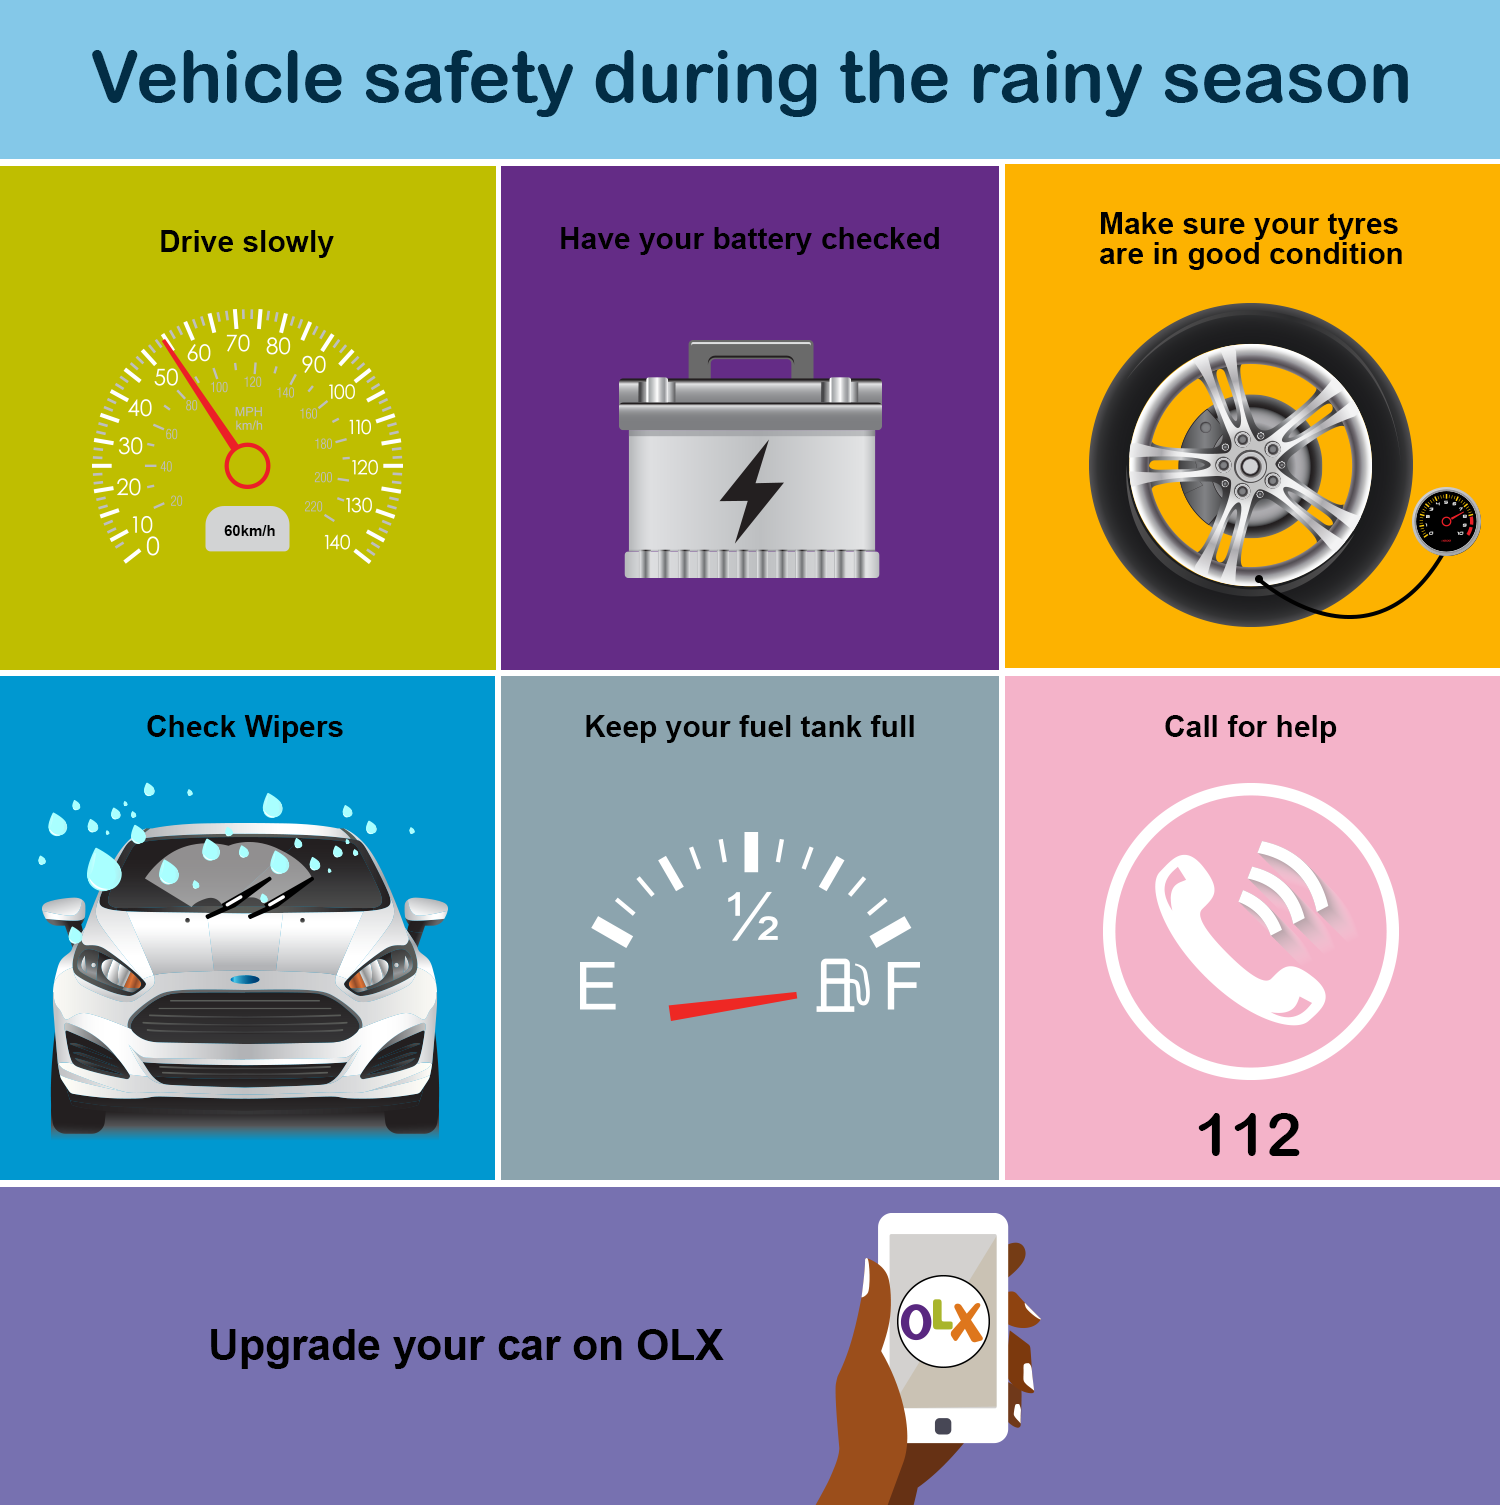 Safety Precautions during the Rainy Season